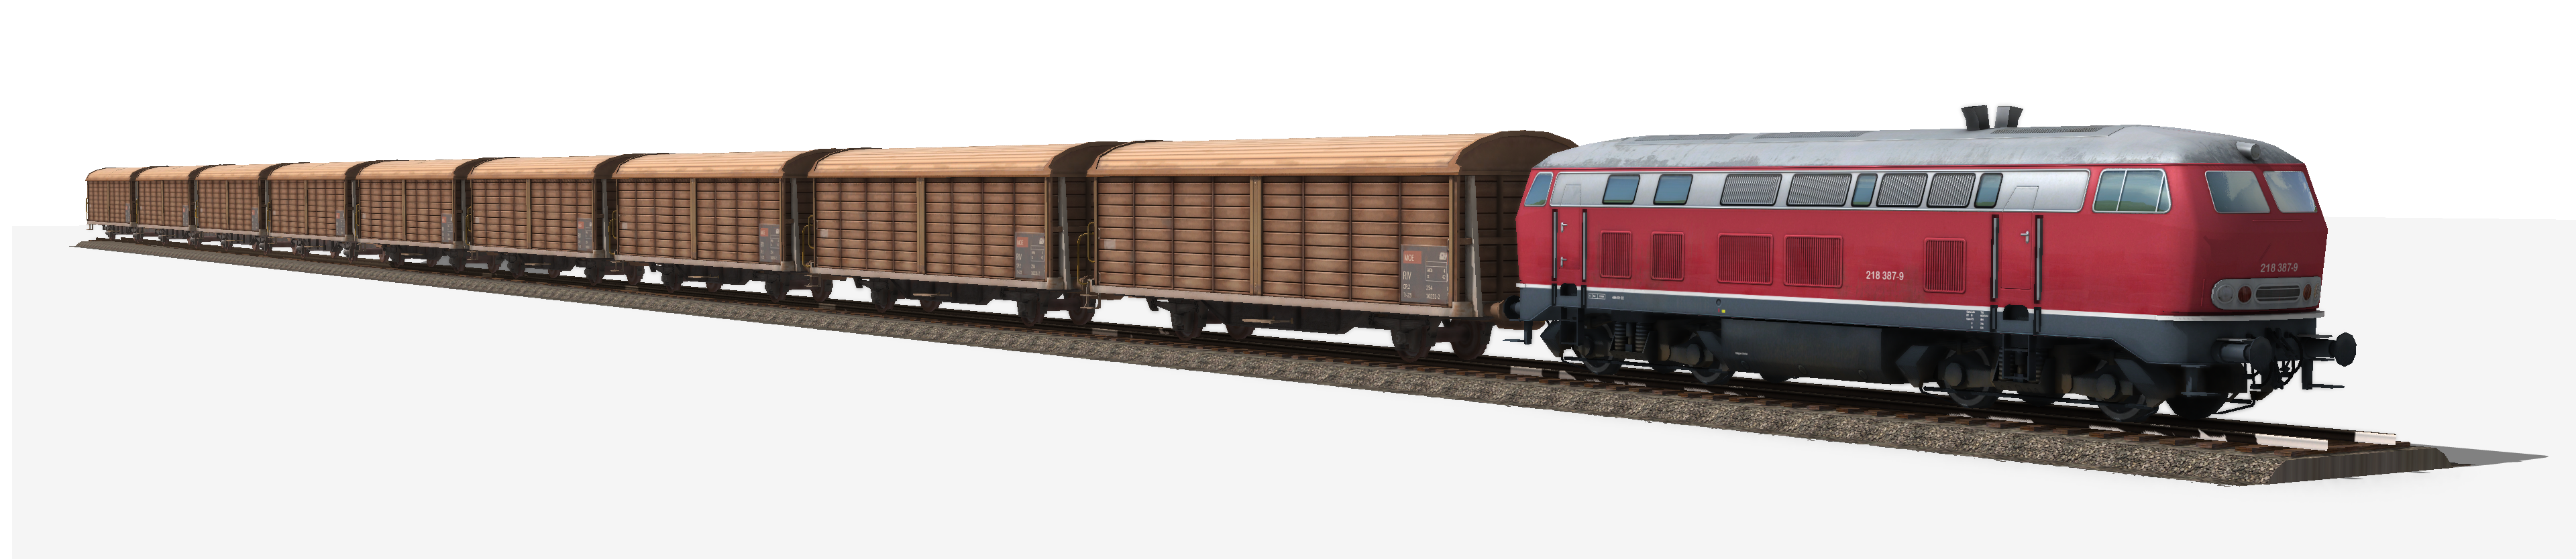 Train png images free. Wagon clipart freight